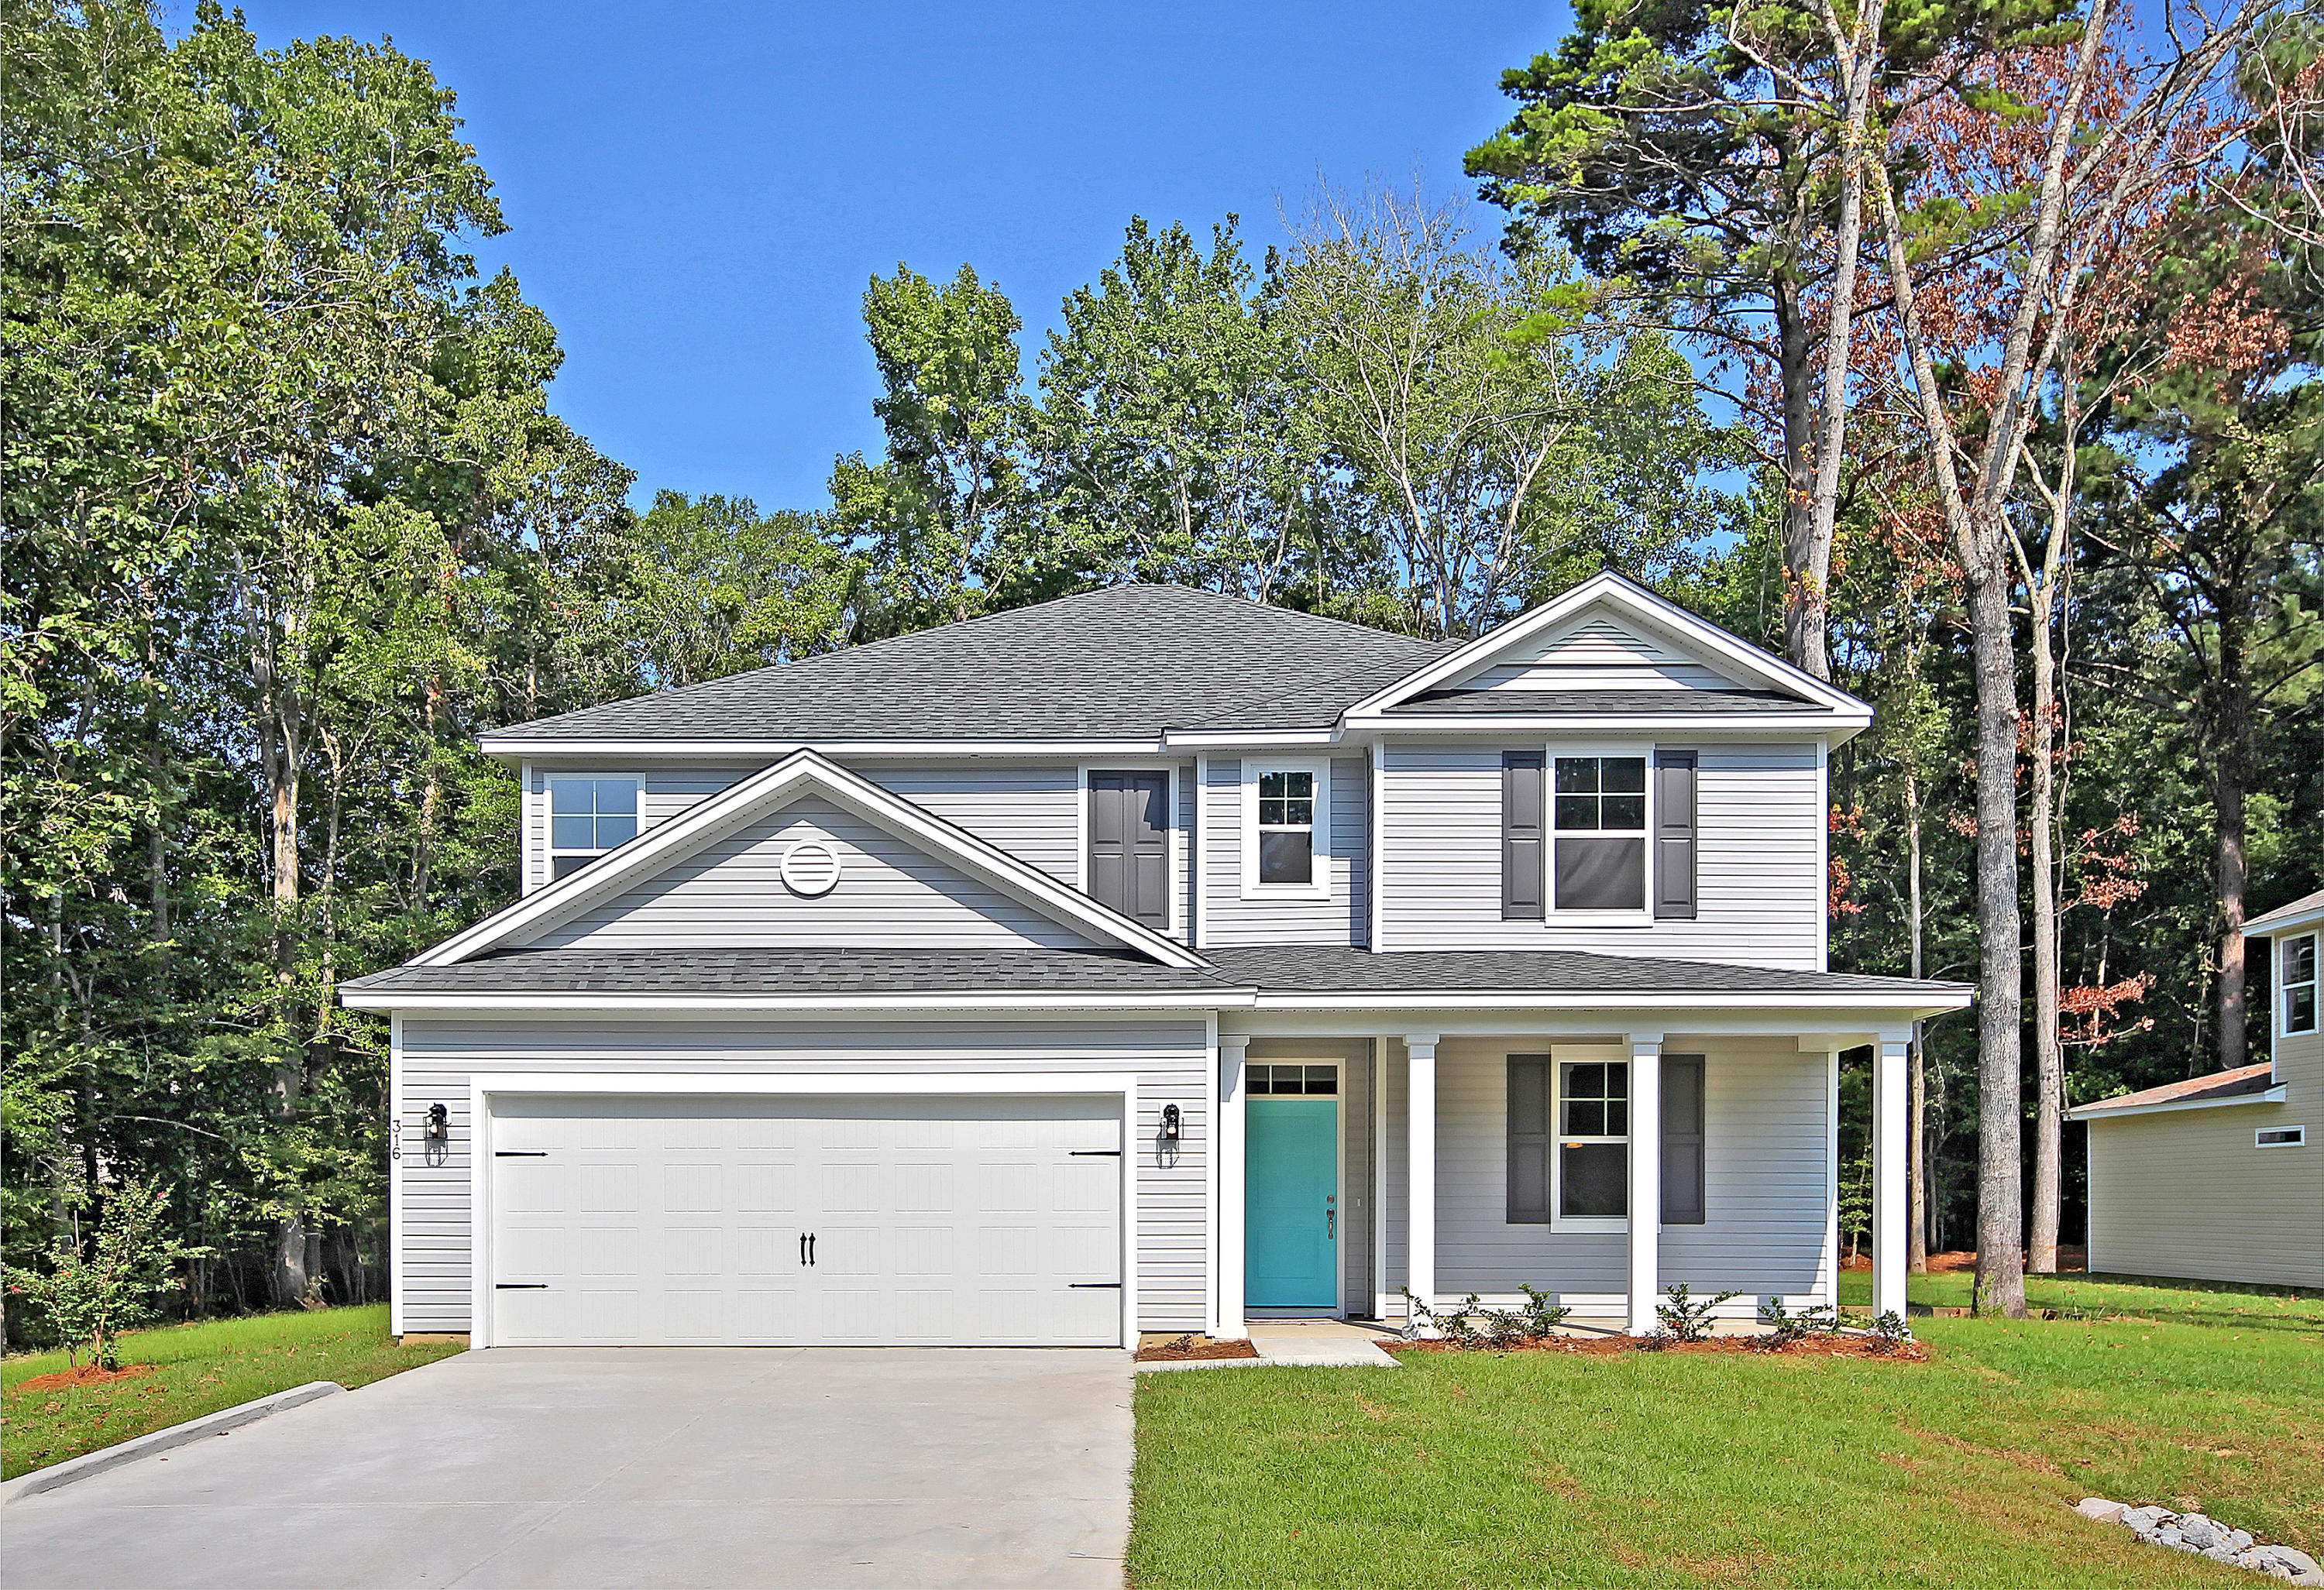 196 W. Smith Street Summerville, SC 29485